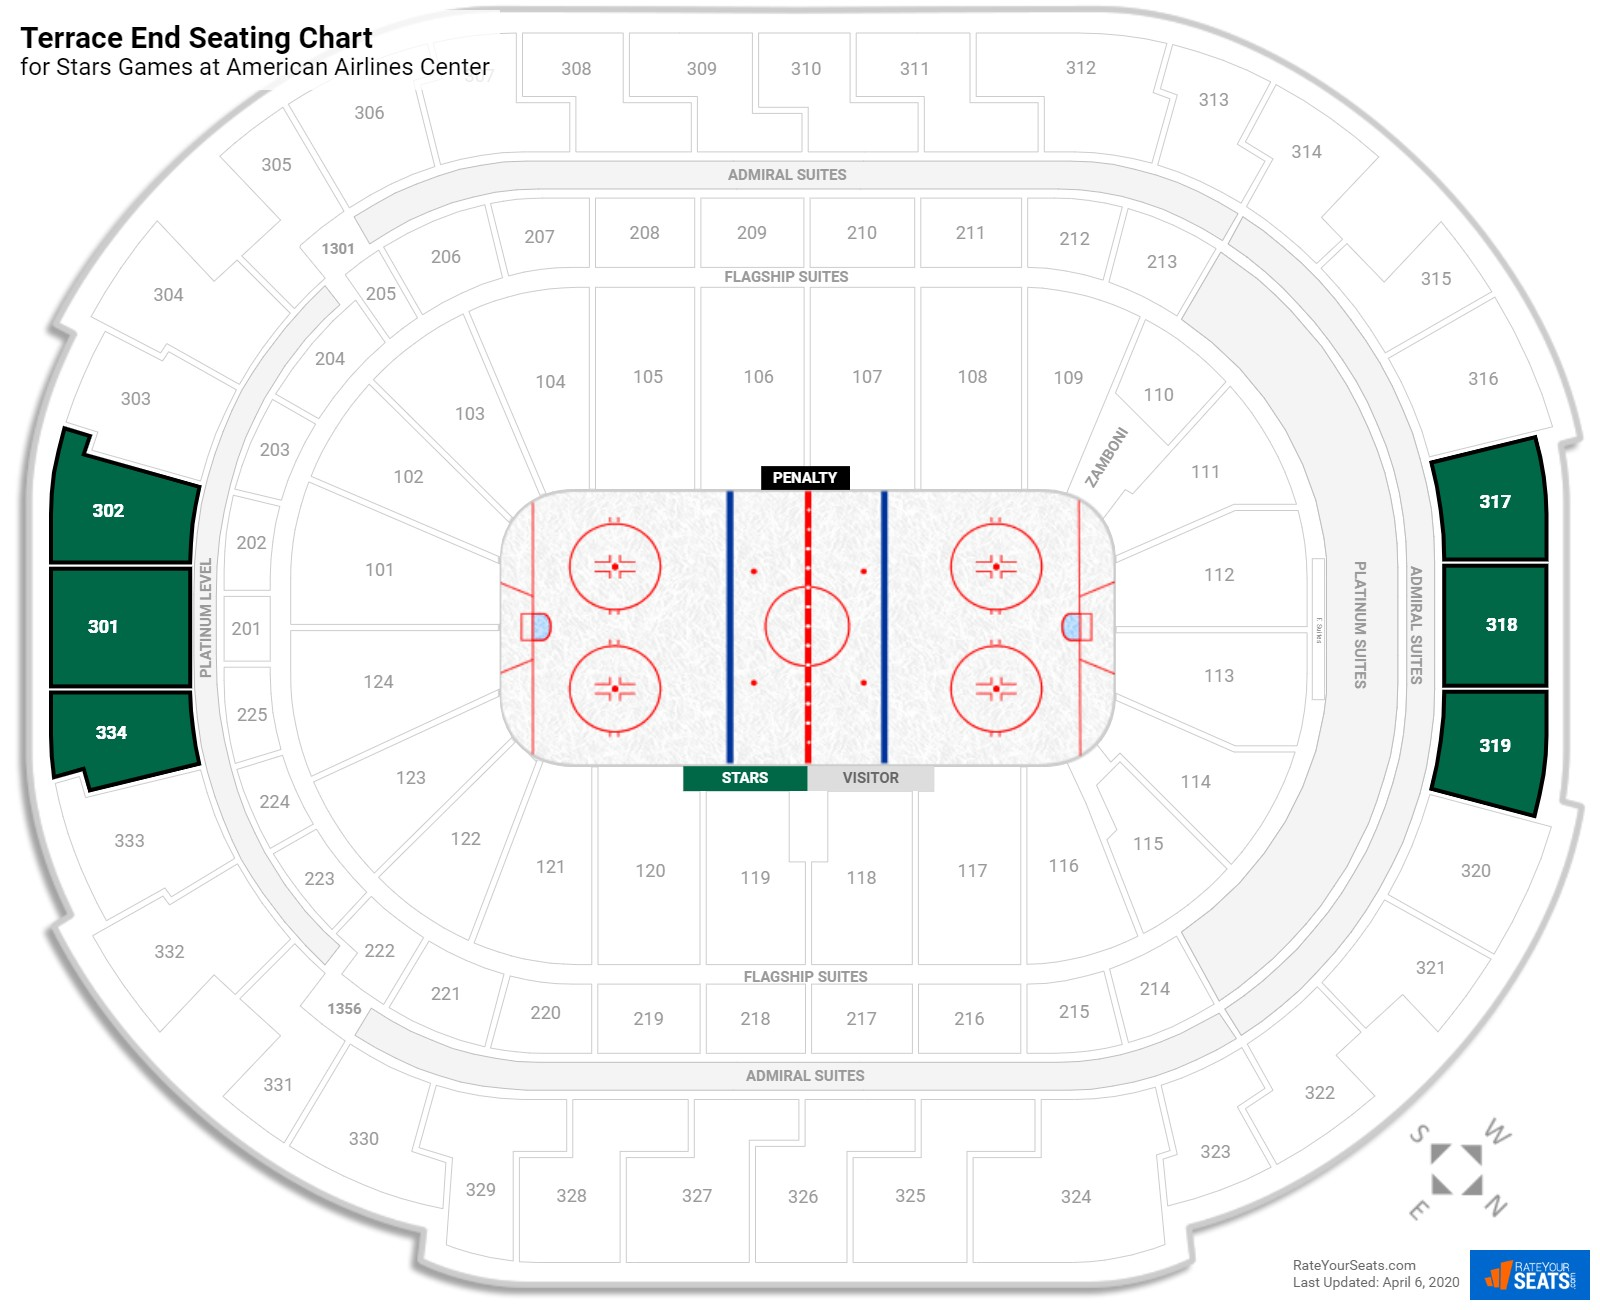 American Airlines Center Terrace Level Behind the Net seating chart